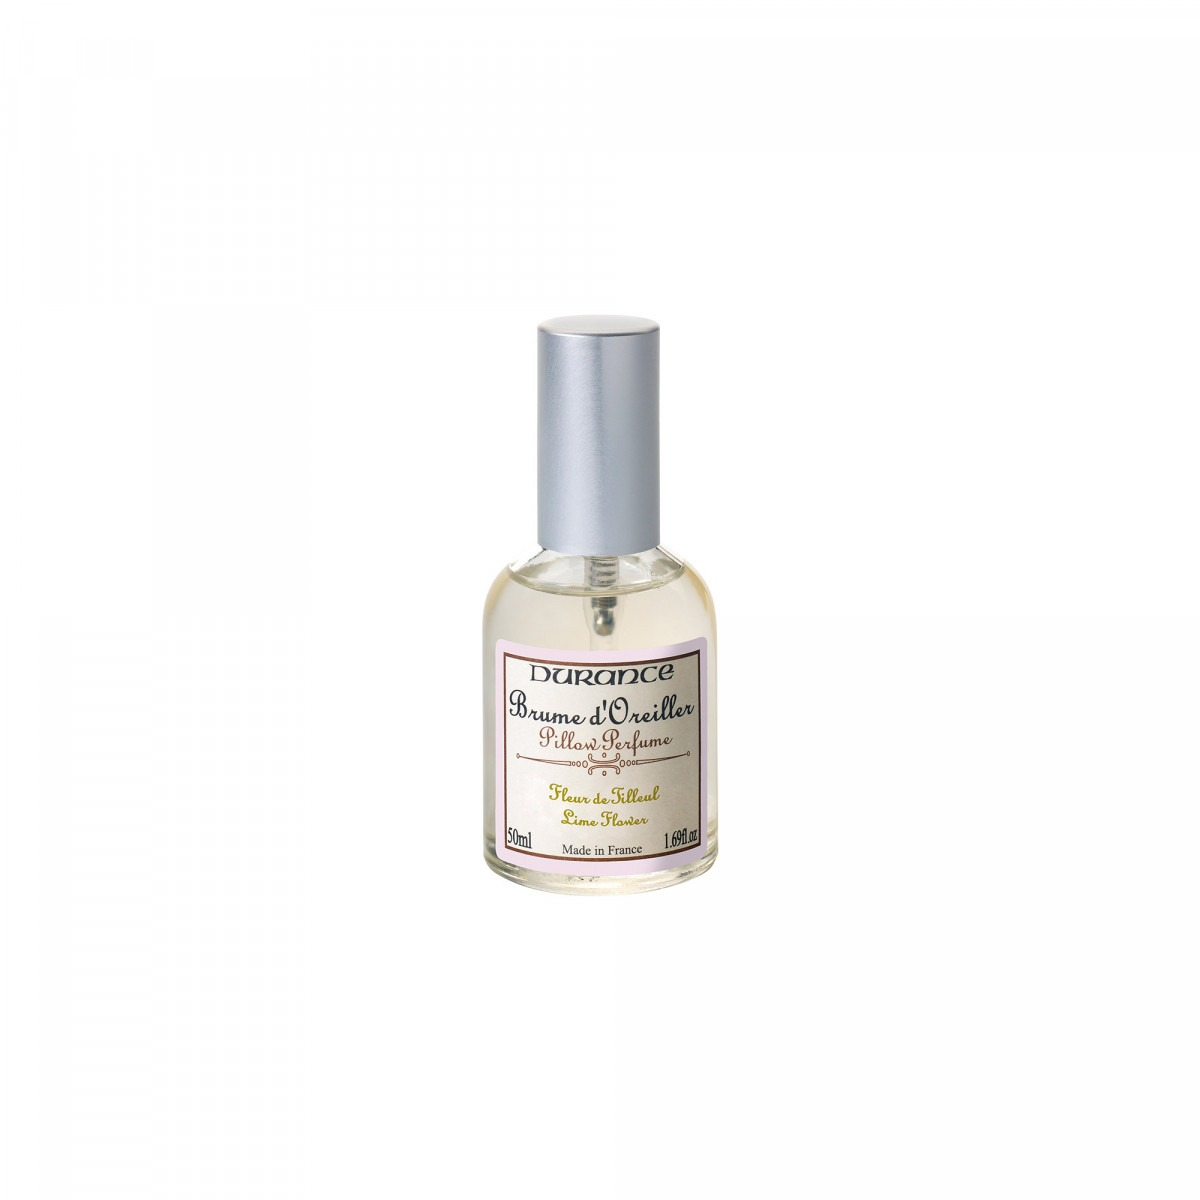 Durance Fleur de Tilleul Pillow Spray 50ml